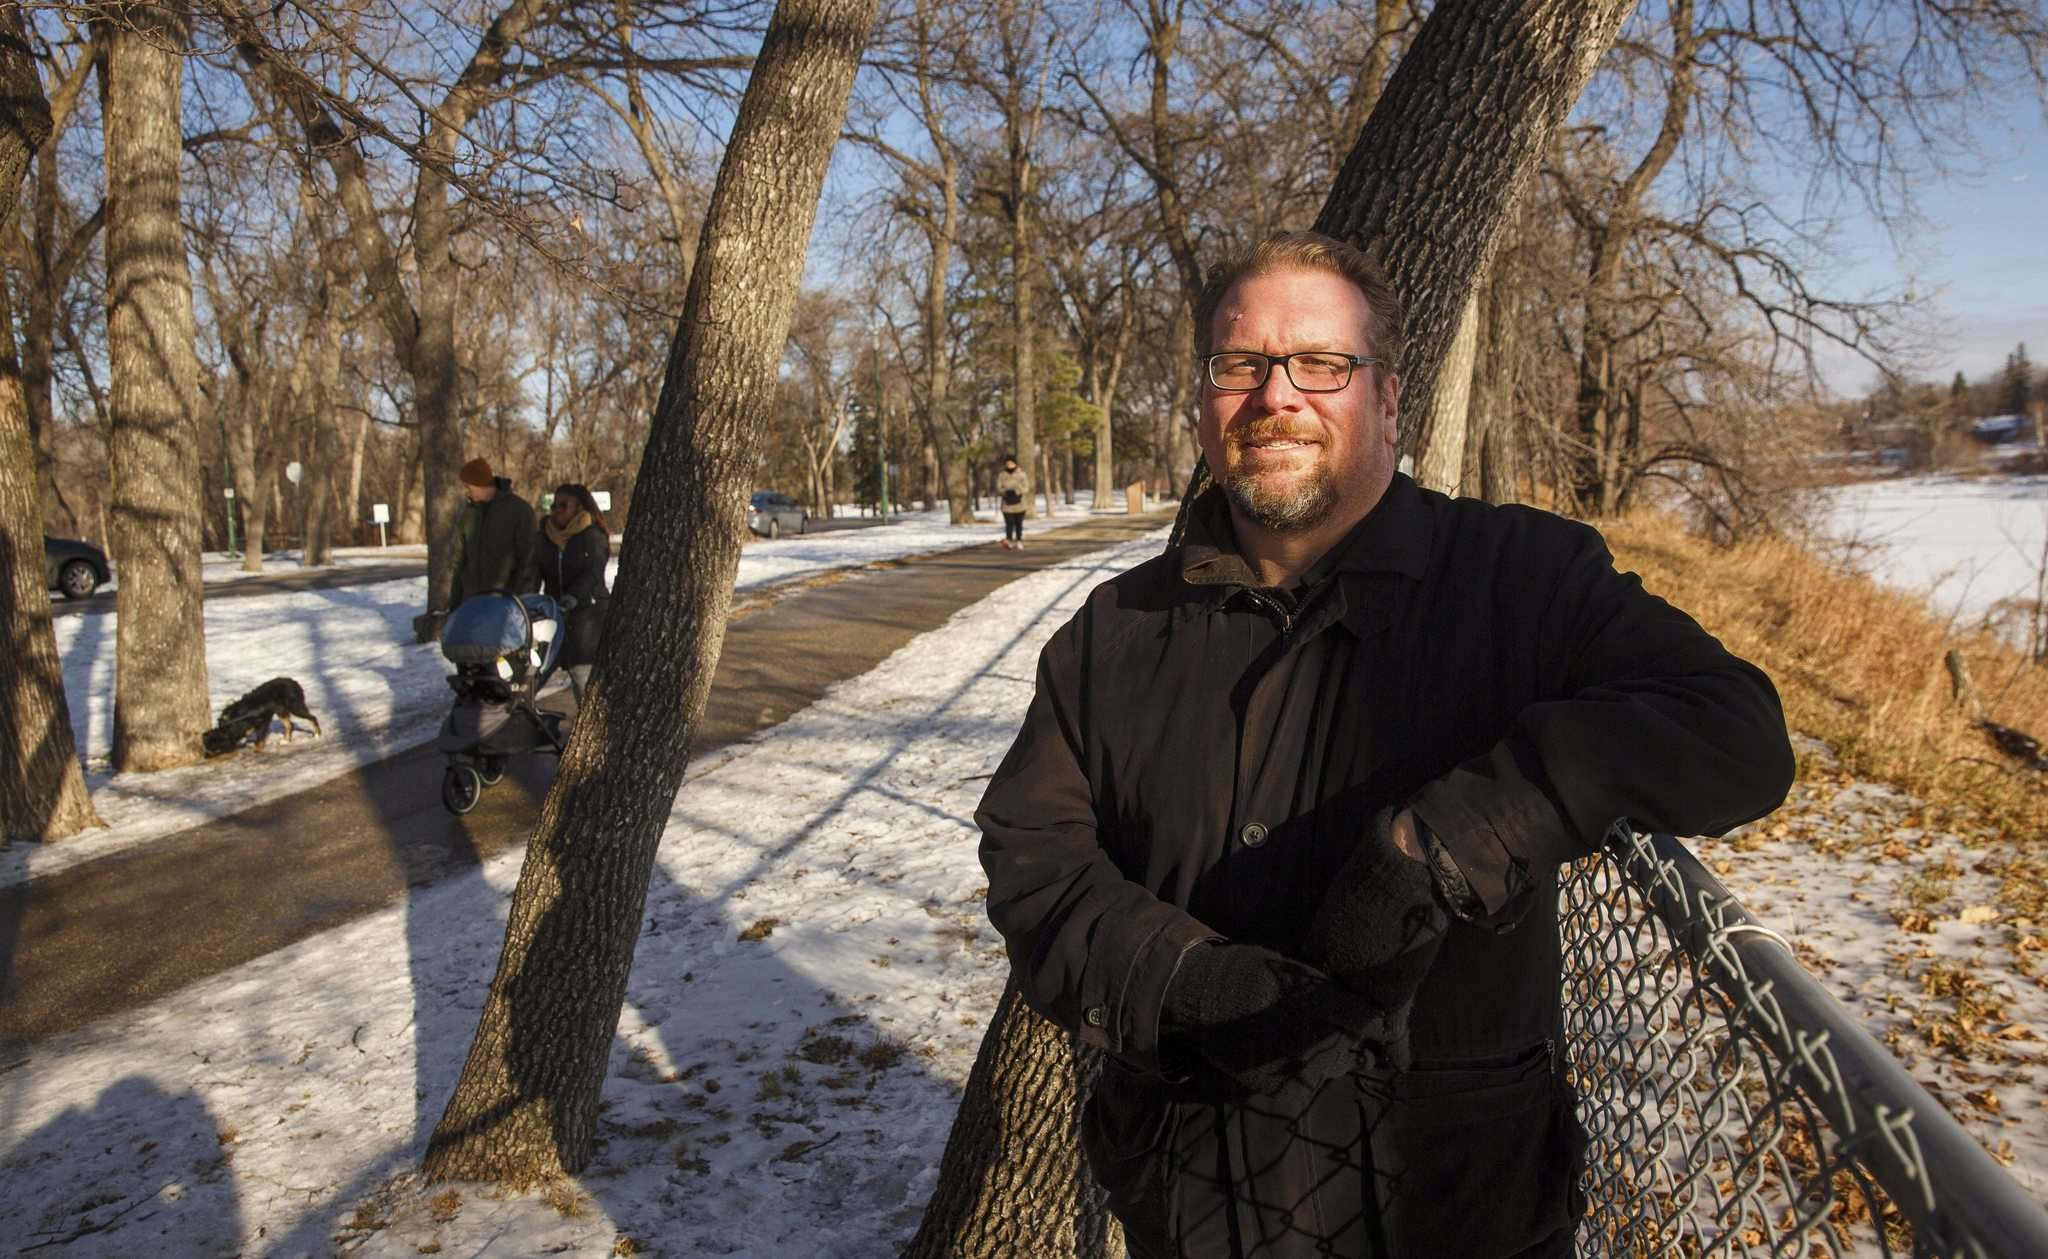 MIKE DEAL / WINNIPEG FREE PRESS</p><p>Free Press sports columnist Mike McIntyre has shed many pounds by watching what he eats and walking in Kildonan Park. The next challenge is shedding strokes from his golf game.</p>